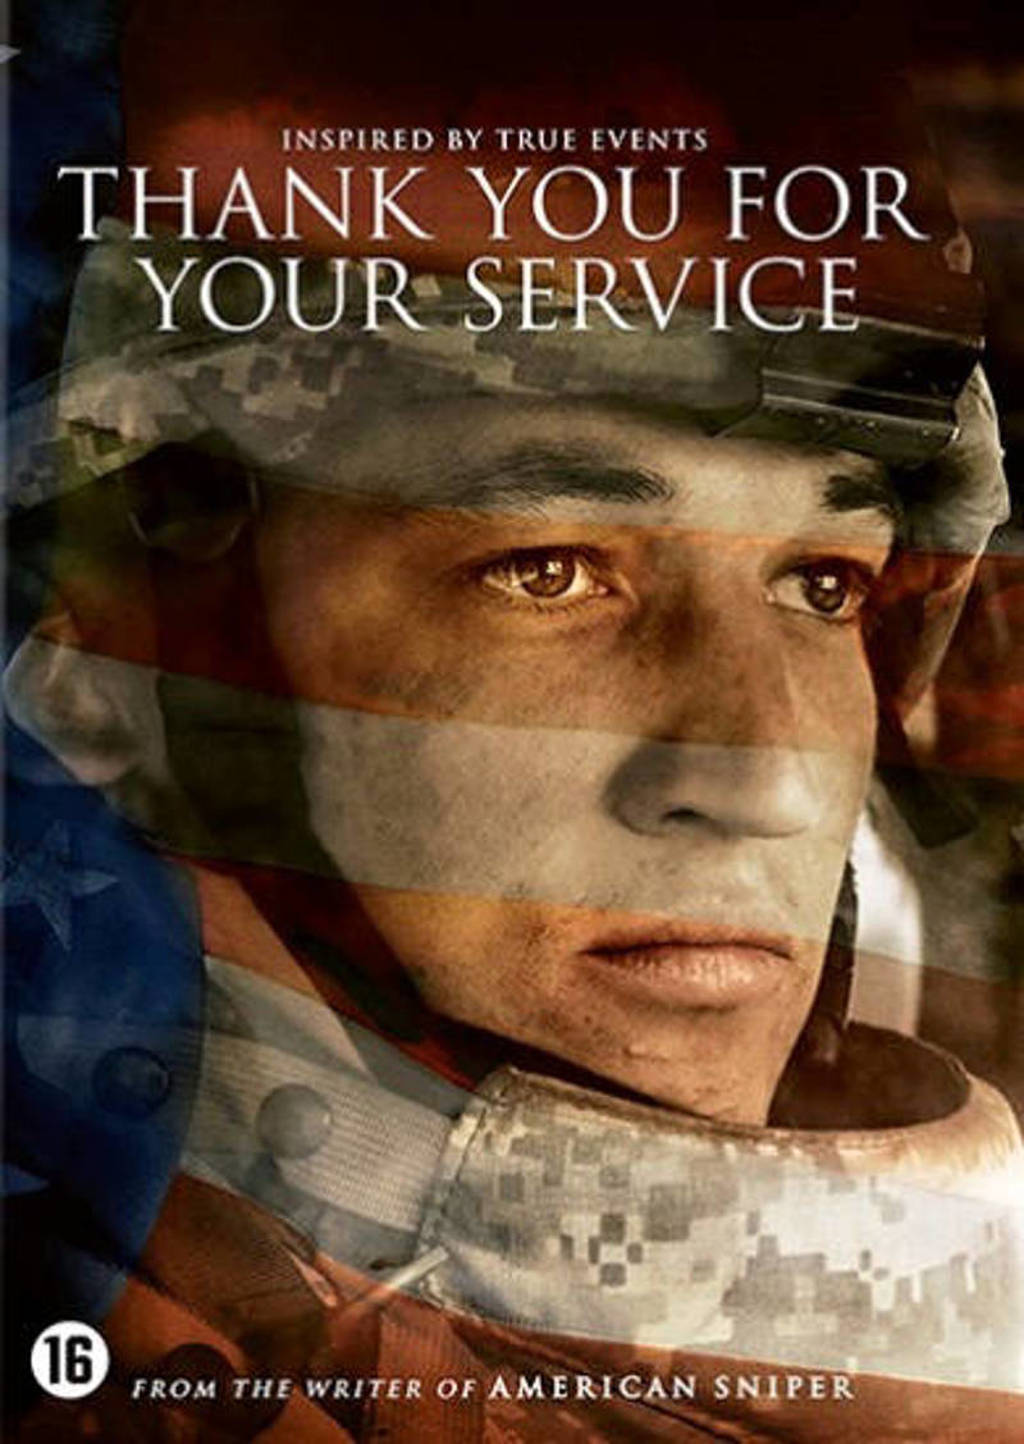 Thank you for your service (DVD)